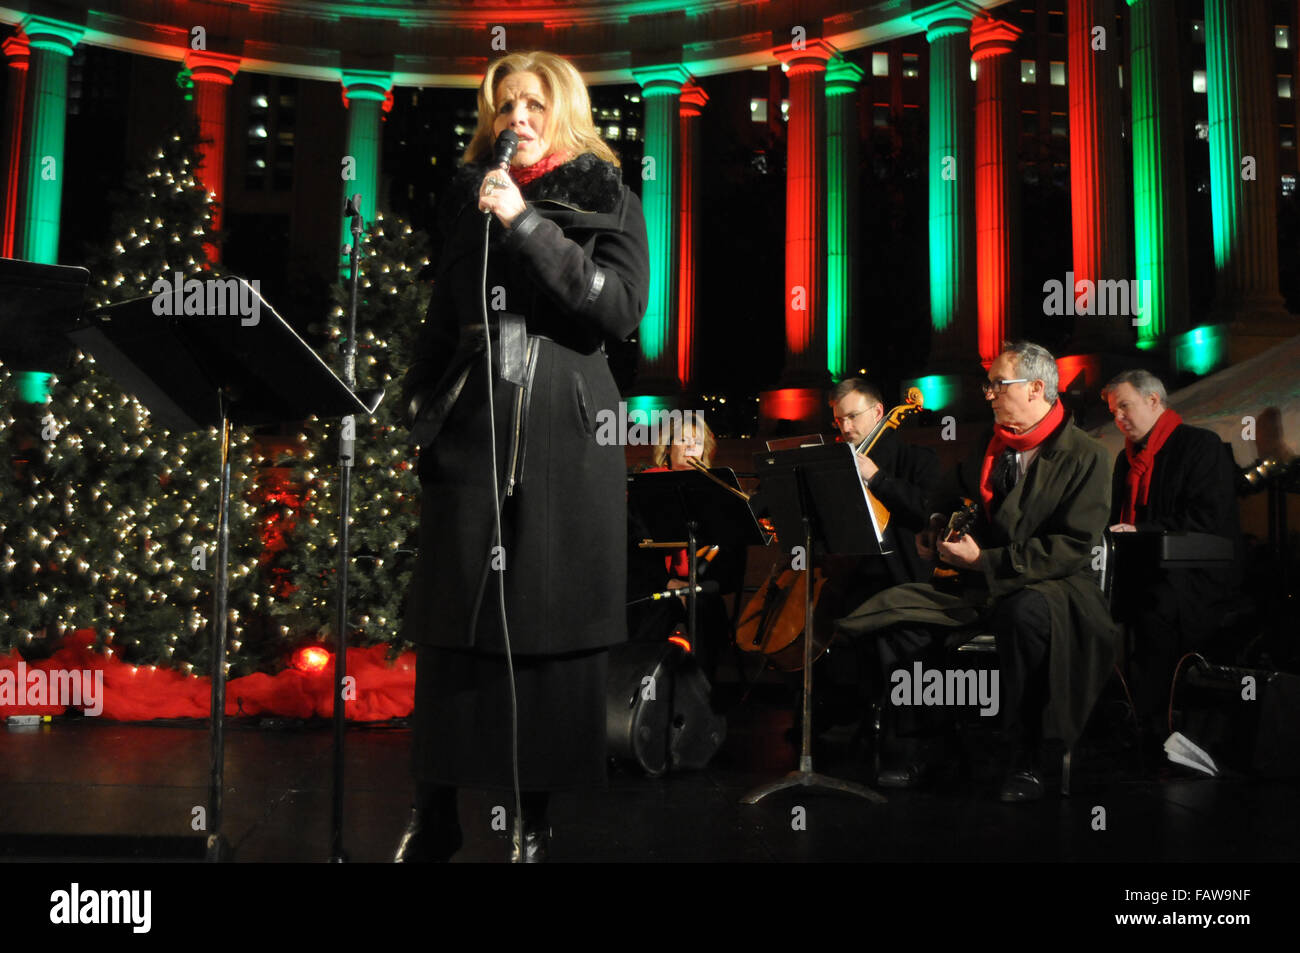 102nd Annual Chicago Christmas Tree Lighting Ceremony at Millennium Park Featuring Renee Fleming Where Chicago Illinois United States When 24 Nov 2015 & 102nd Annual Chicago Christmas Tree Lighting Ceremony at Millennium ...